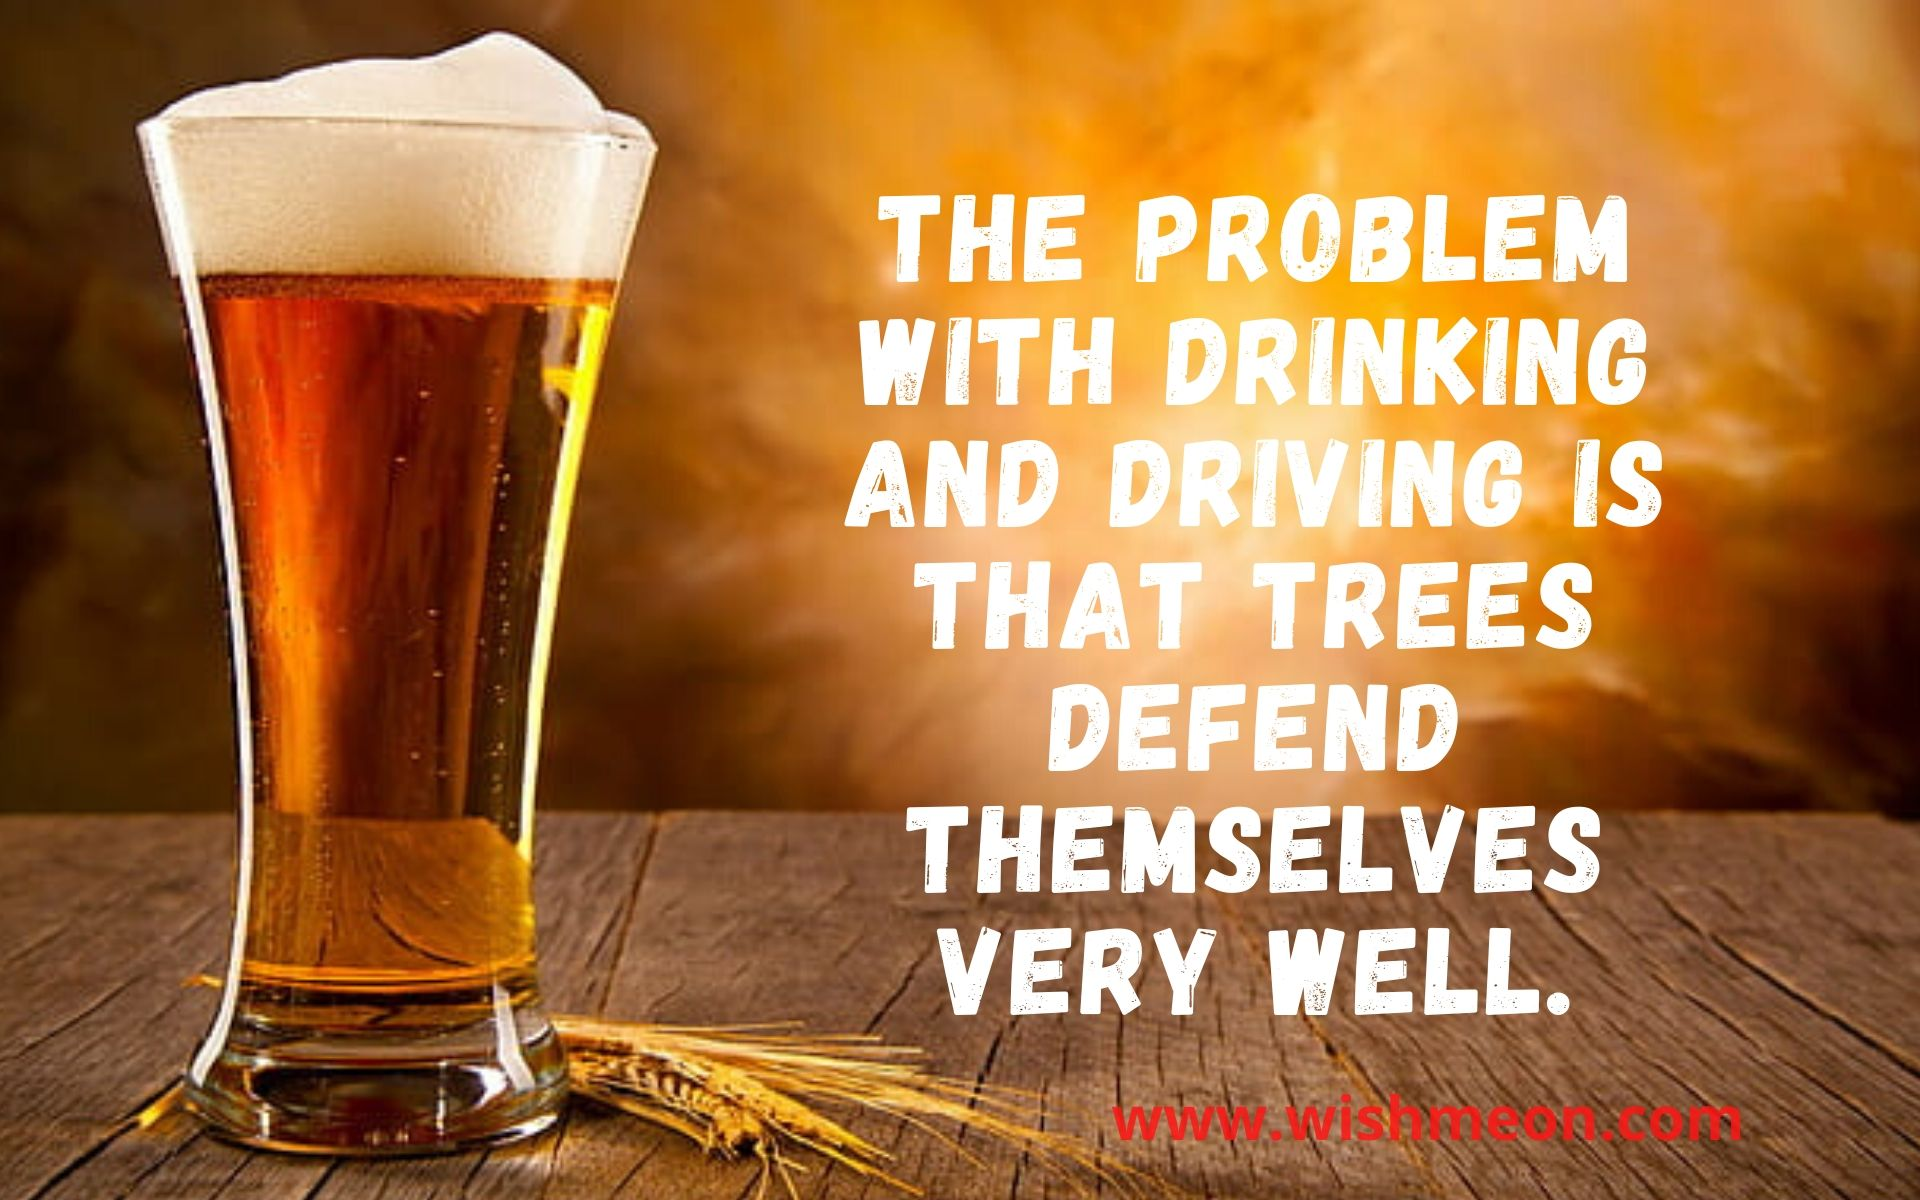 The Problem With Drinking And Driving Is That Trees